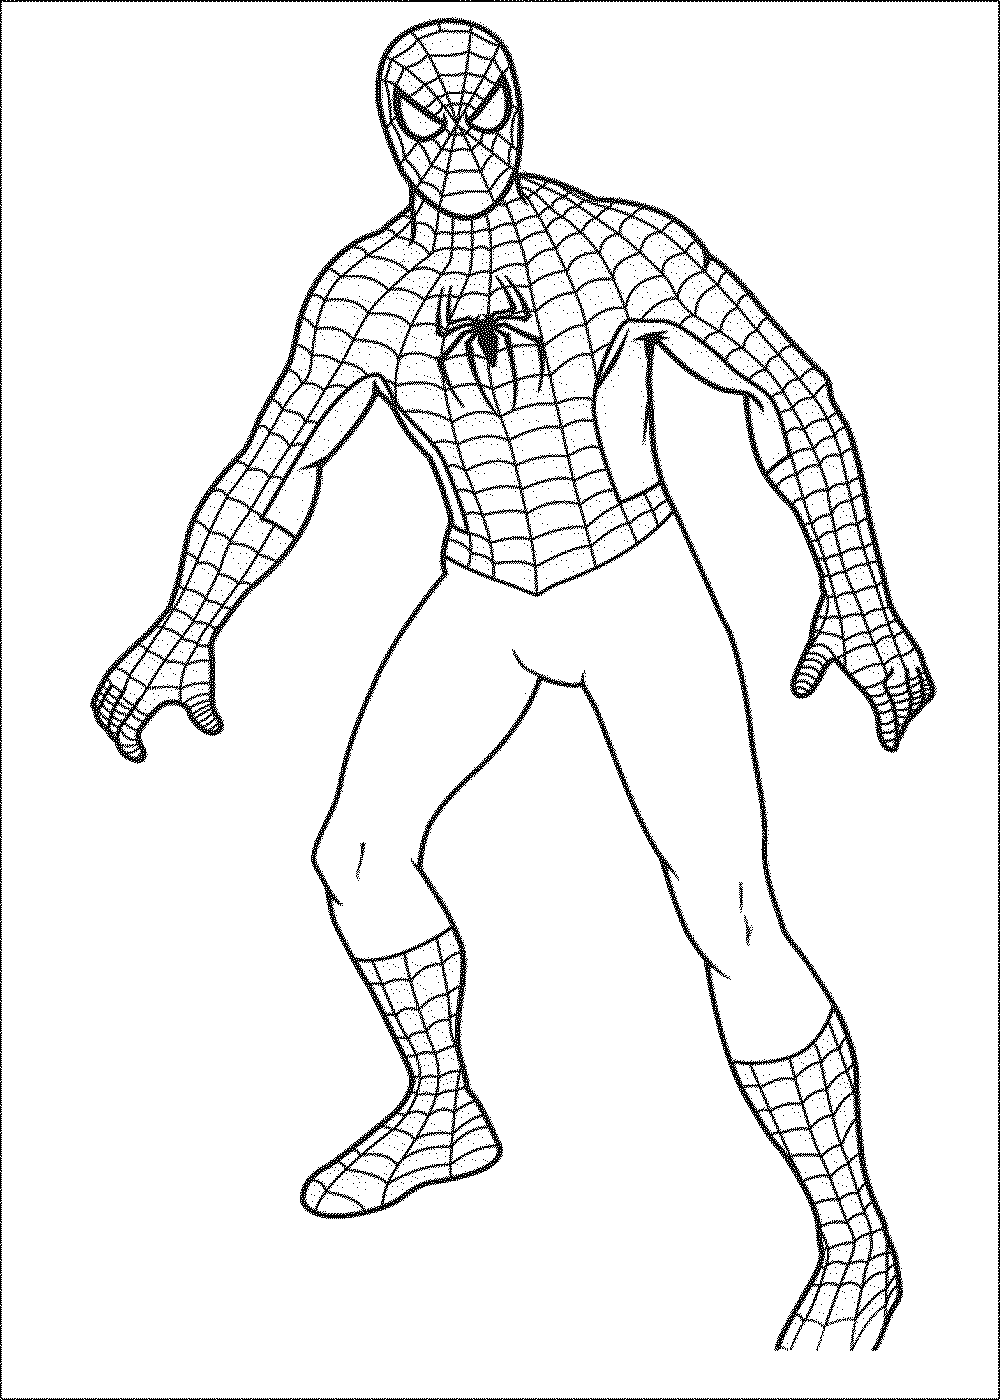 Spiderman online coloring pages for kids - Spiderman Coloring Pages Printable Coloring Pages Sheets For Kids Get The Latest Free Spiderman Coloring Pages Images Favorite Coloring Pages To Print